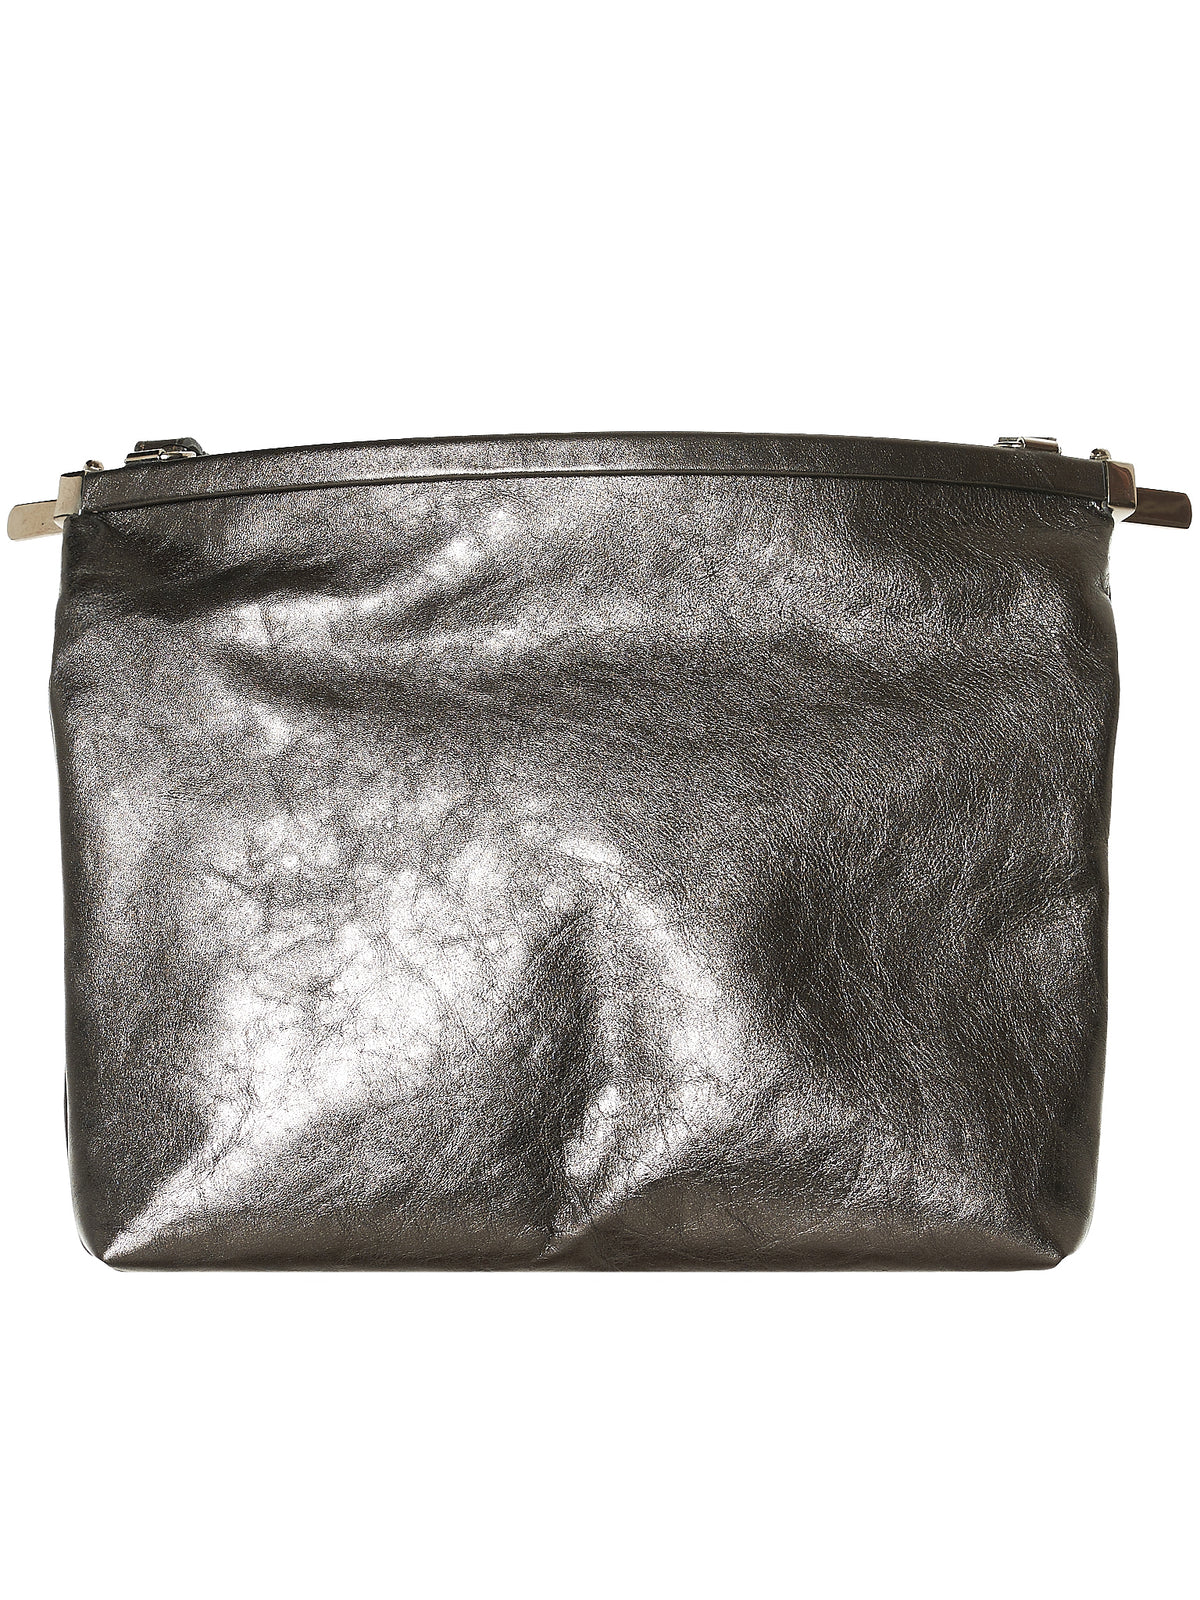 Ann Demeulemeester Leather Bag - Hlorenzo Front